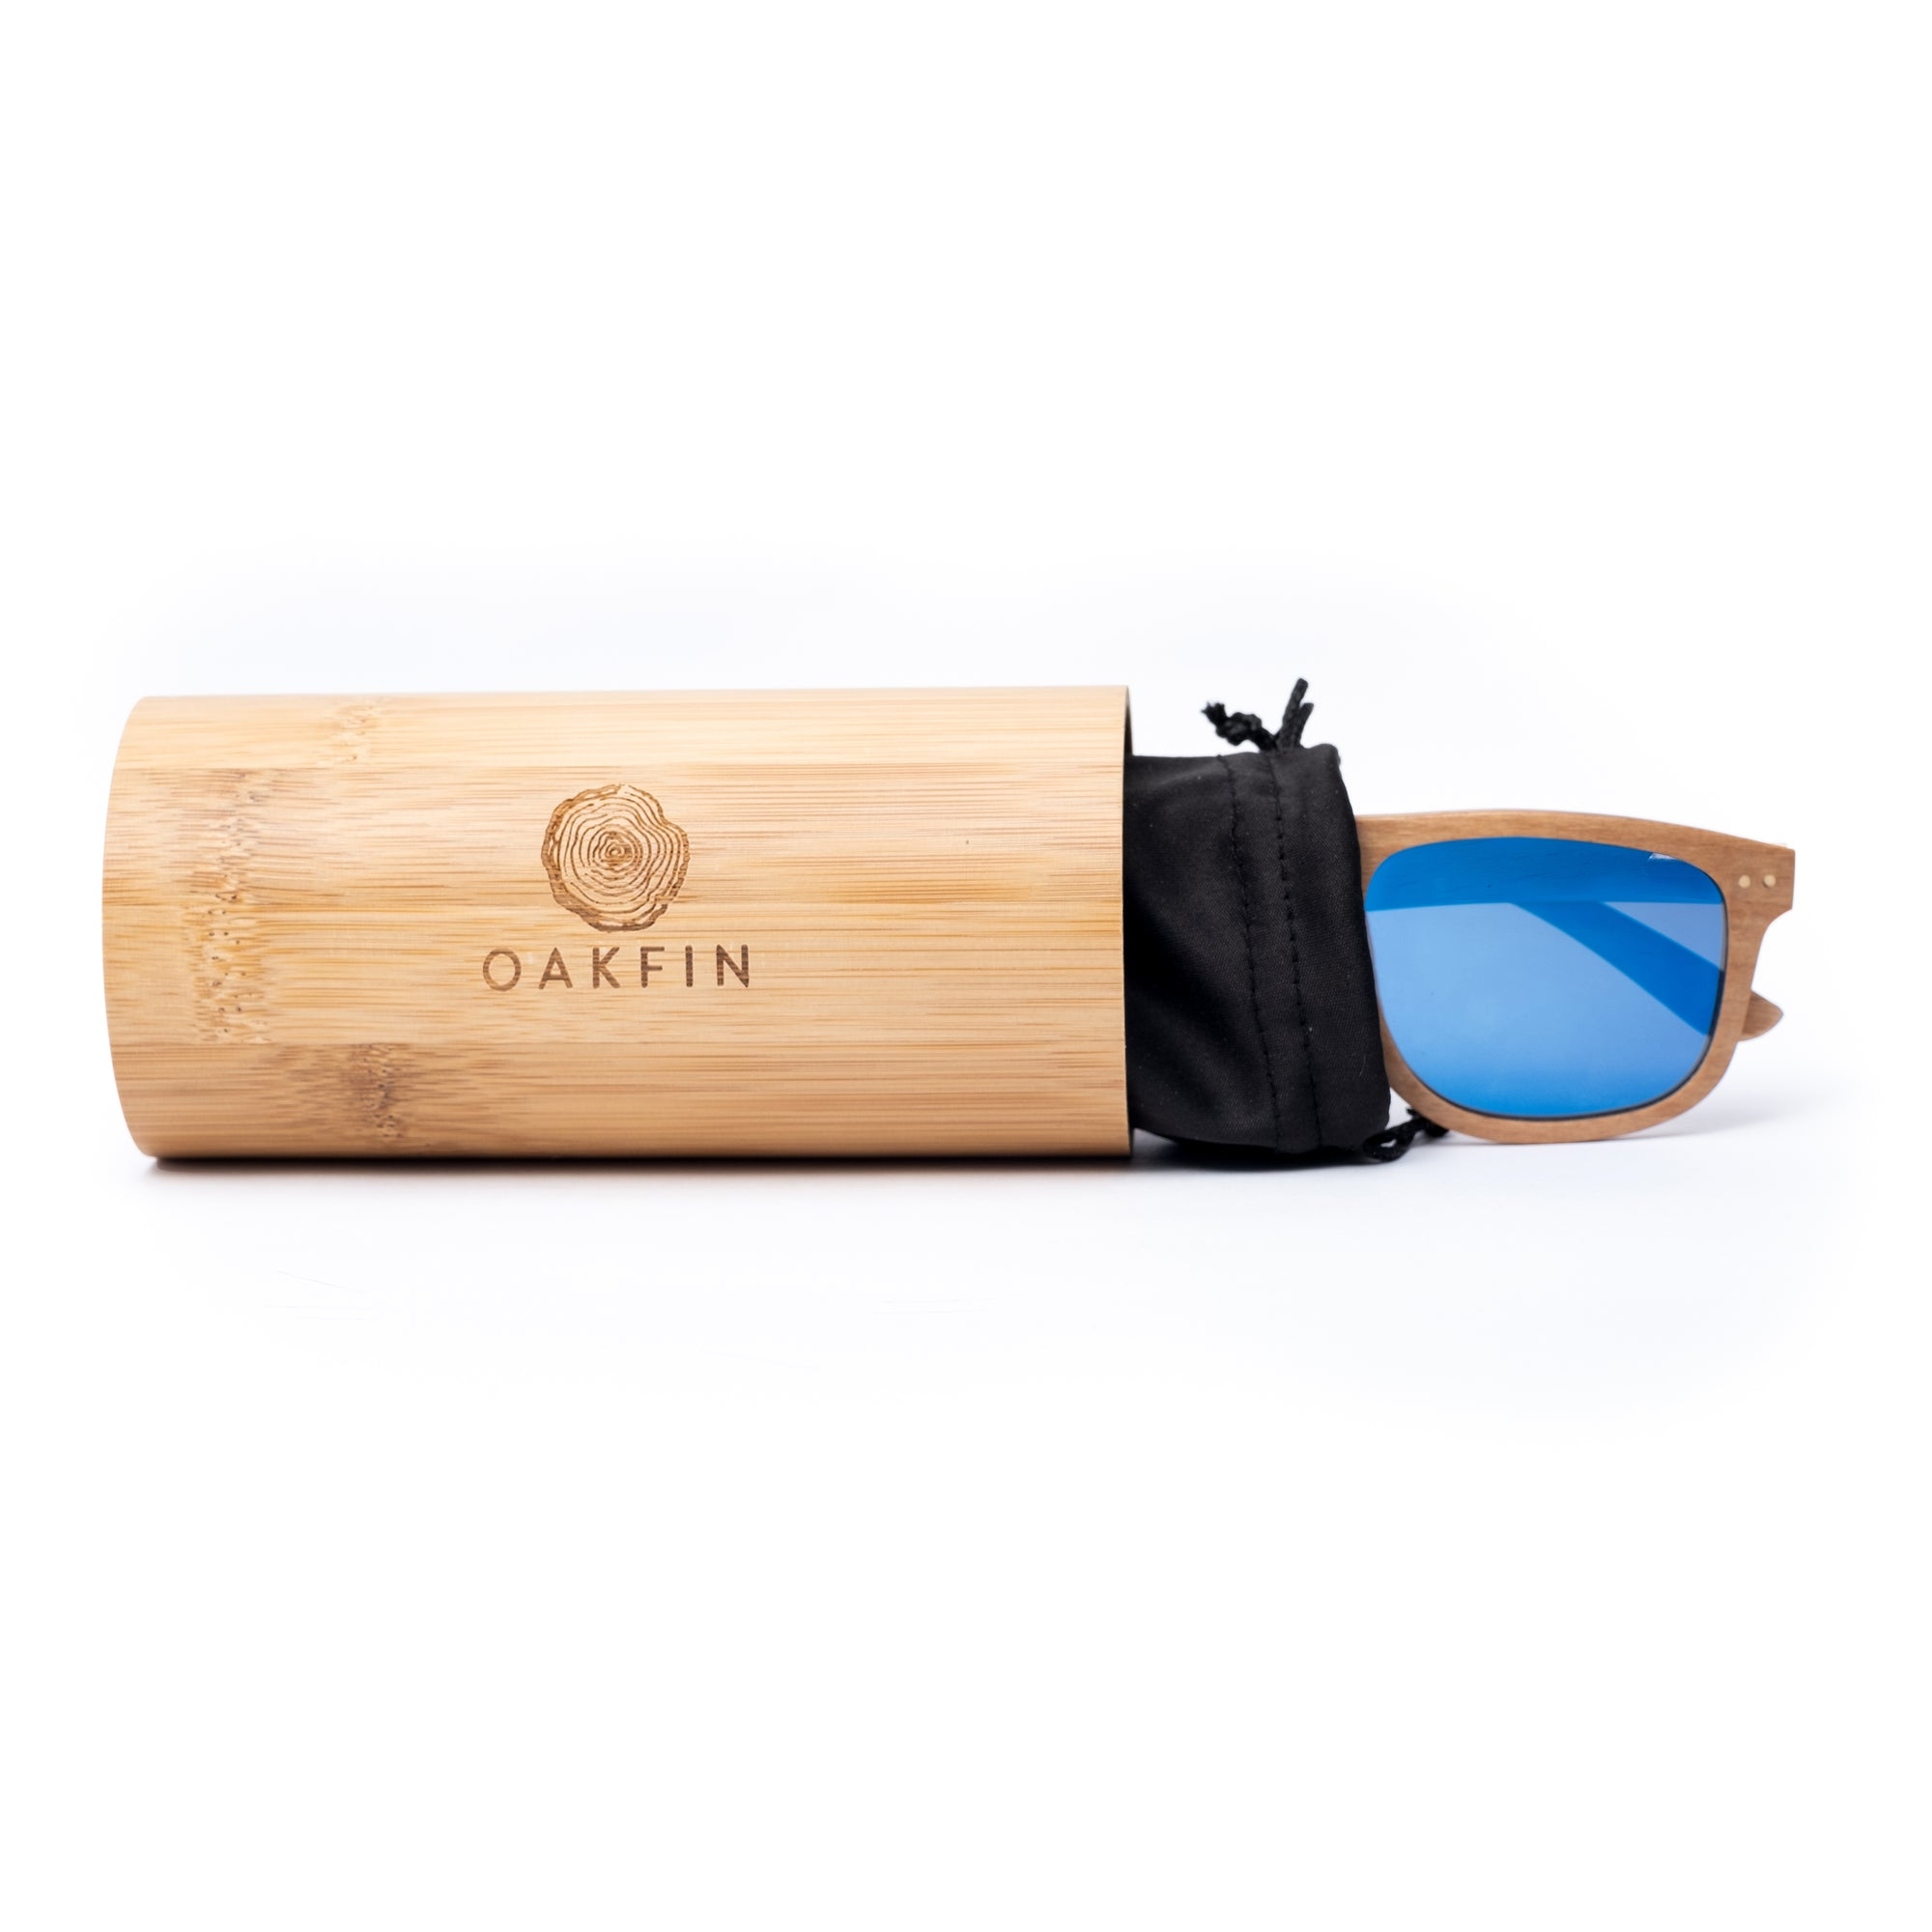 Oakfin Wood Sunglasses - Oakfin